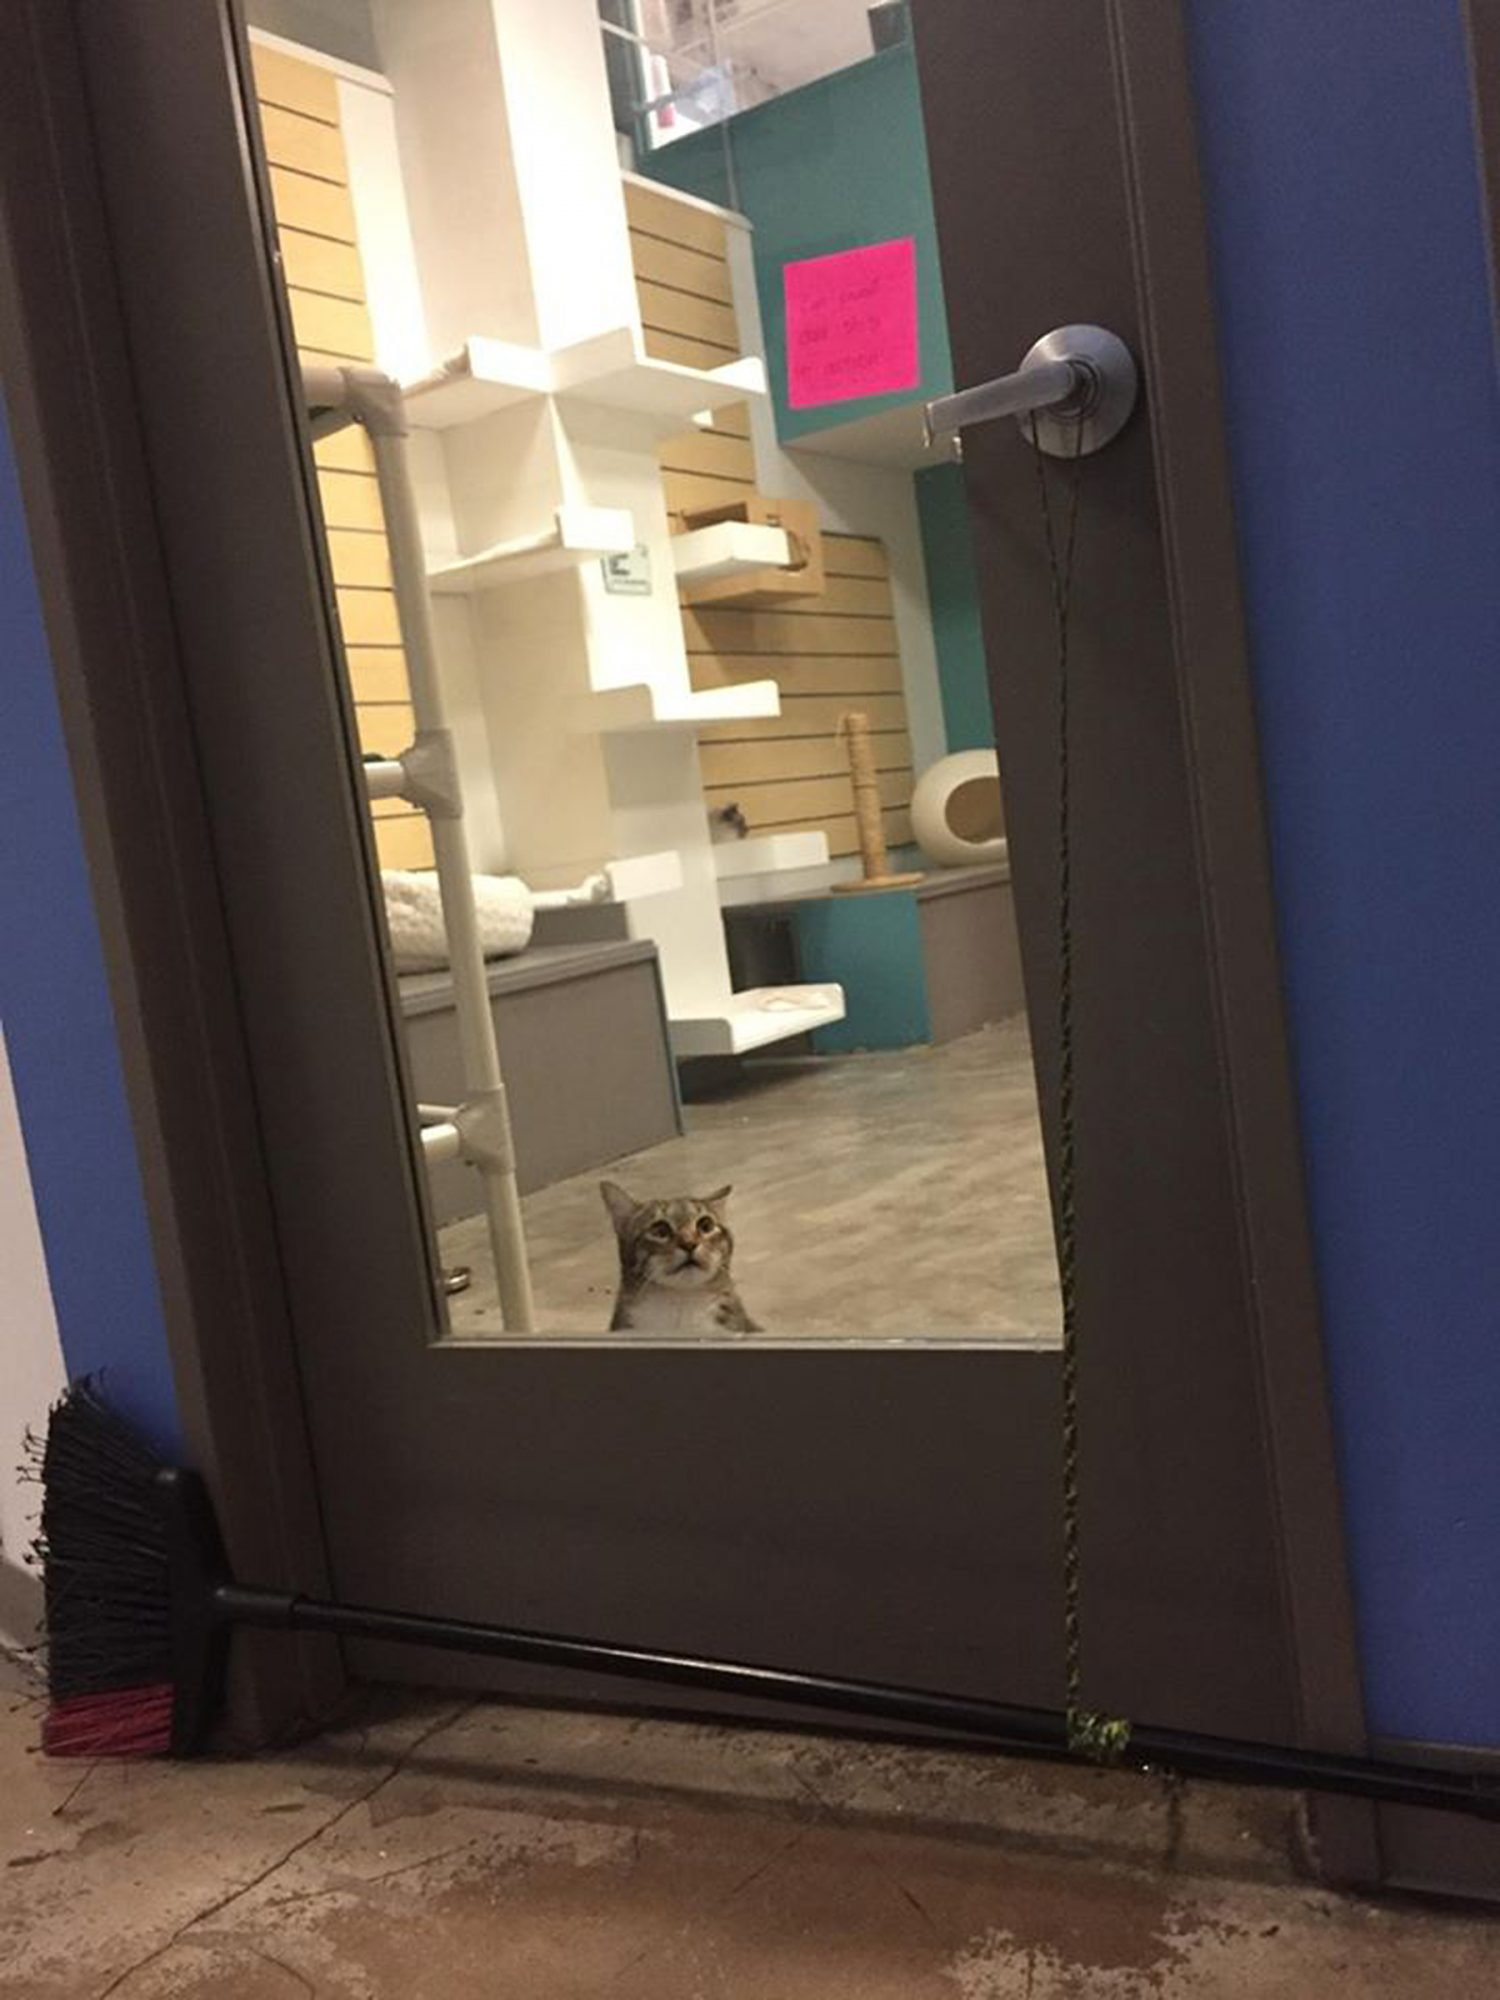 Quilty the escaping cat